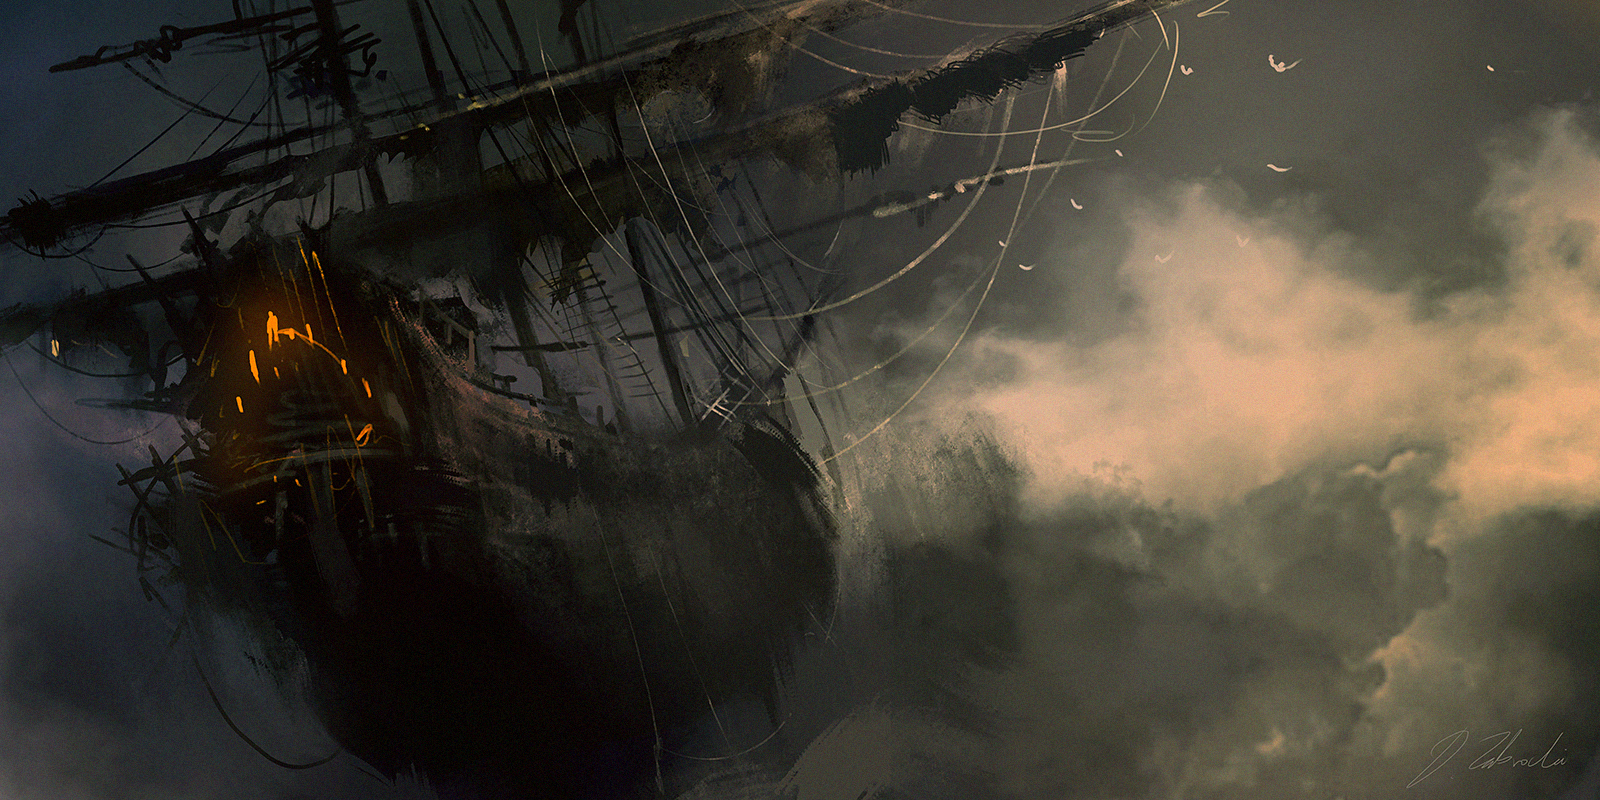 Flying Dutchman by daRoz